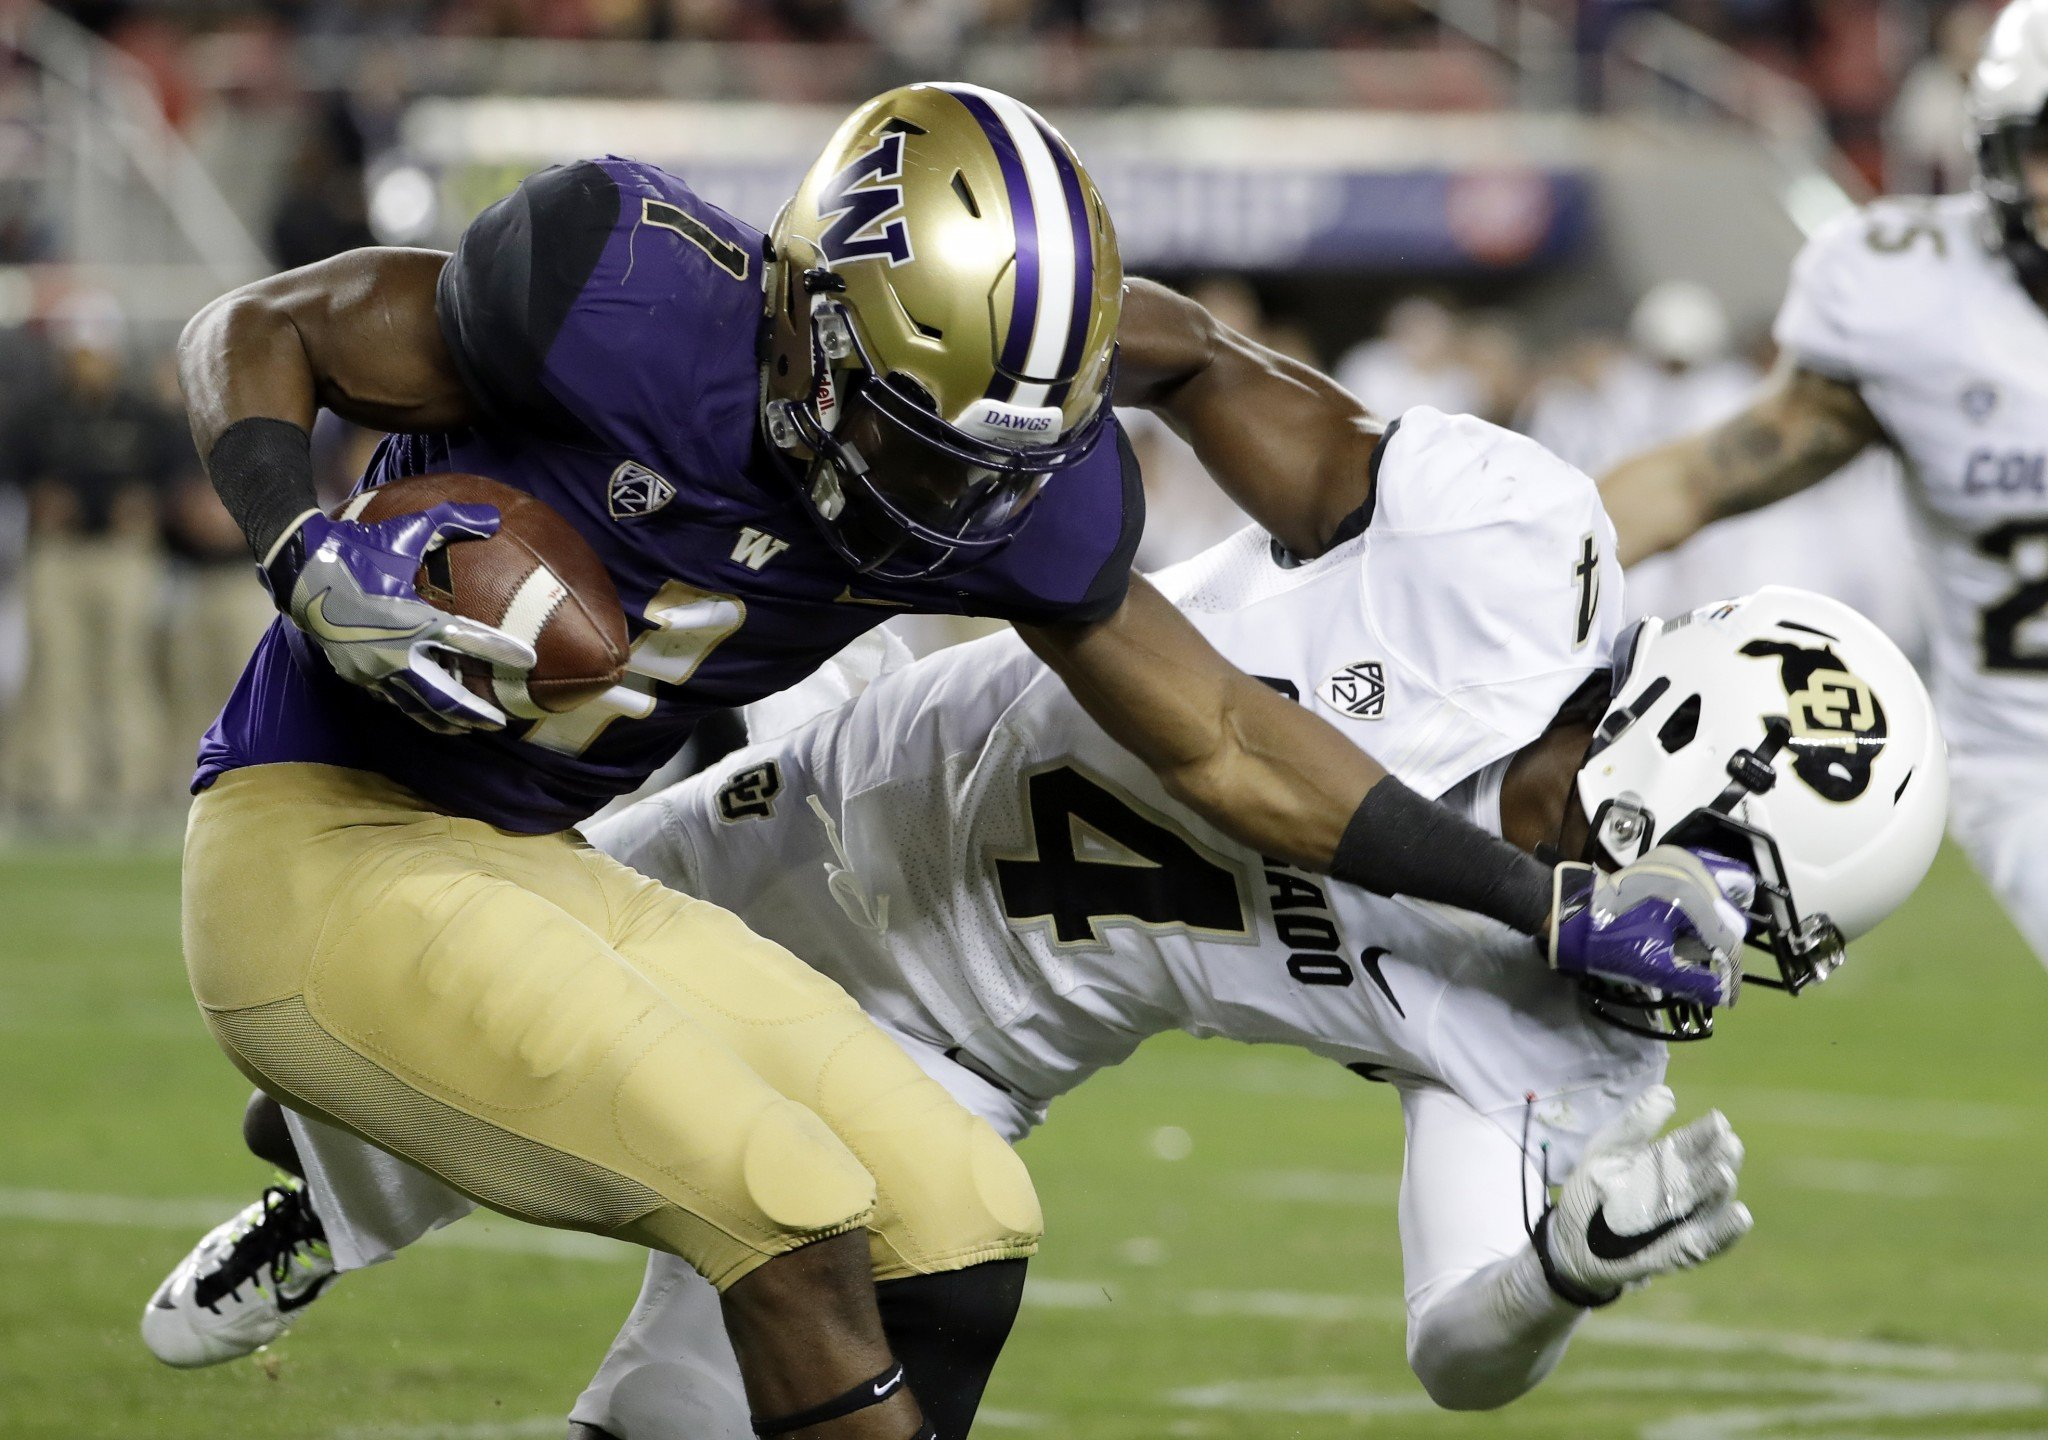 Washington receiver John Ross had a highlight reel touchdown catch in the second half of the Pac-12 title game. (AP Photo/Marcio Jose Sanchez)